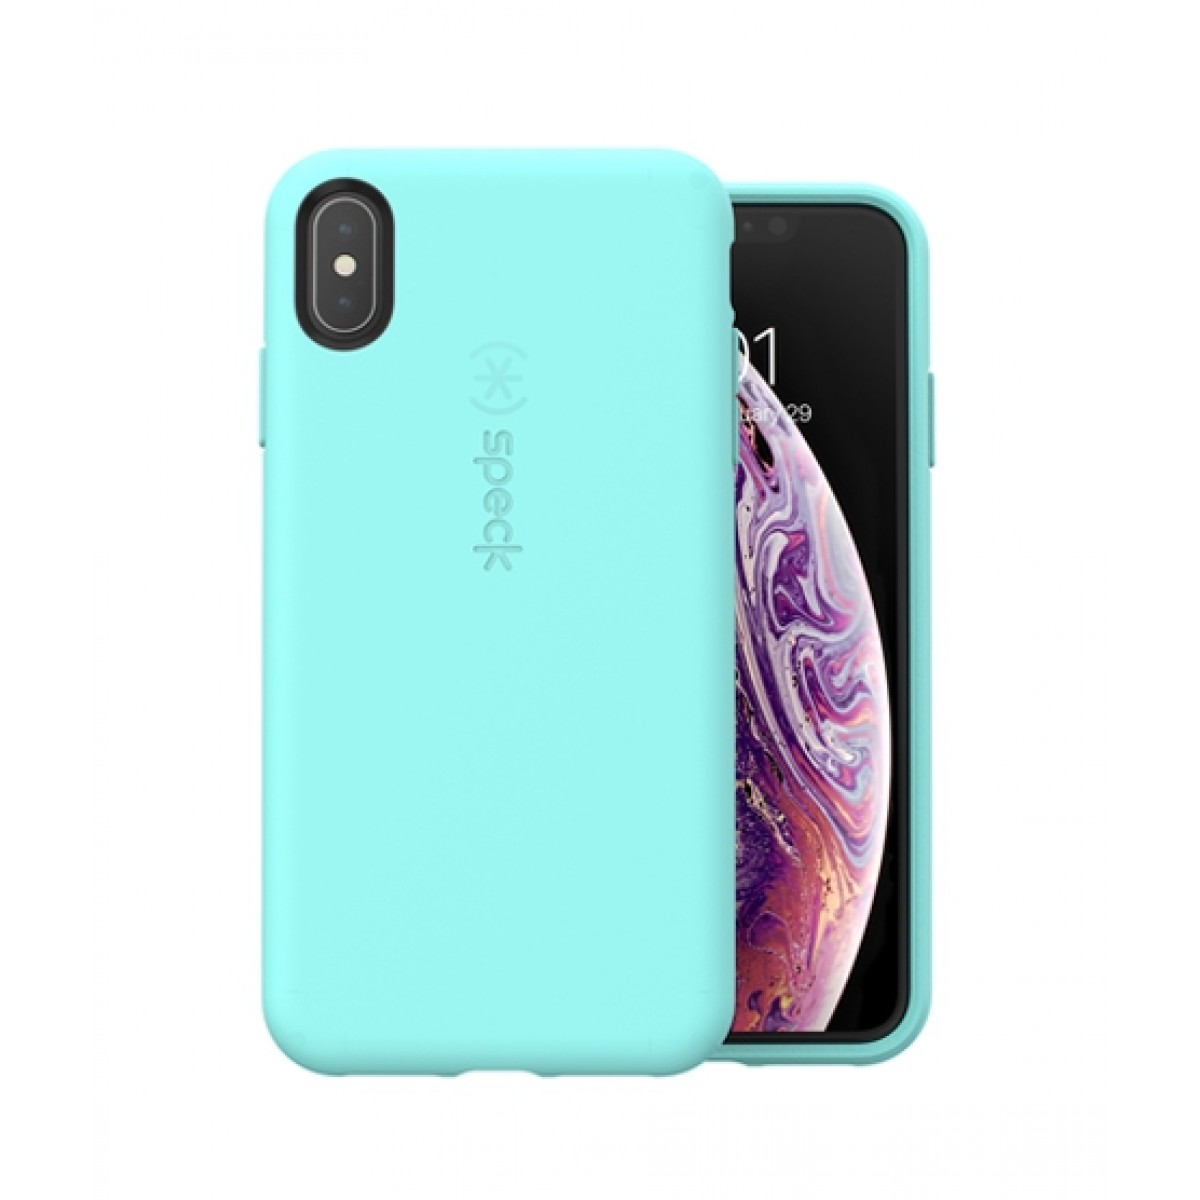 new arrival 87a95 4c2d8 Speck CandyShell Fit Zeal Teal Case For iPhone XS Max